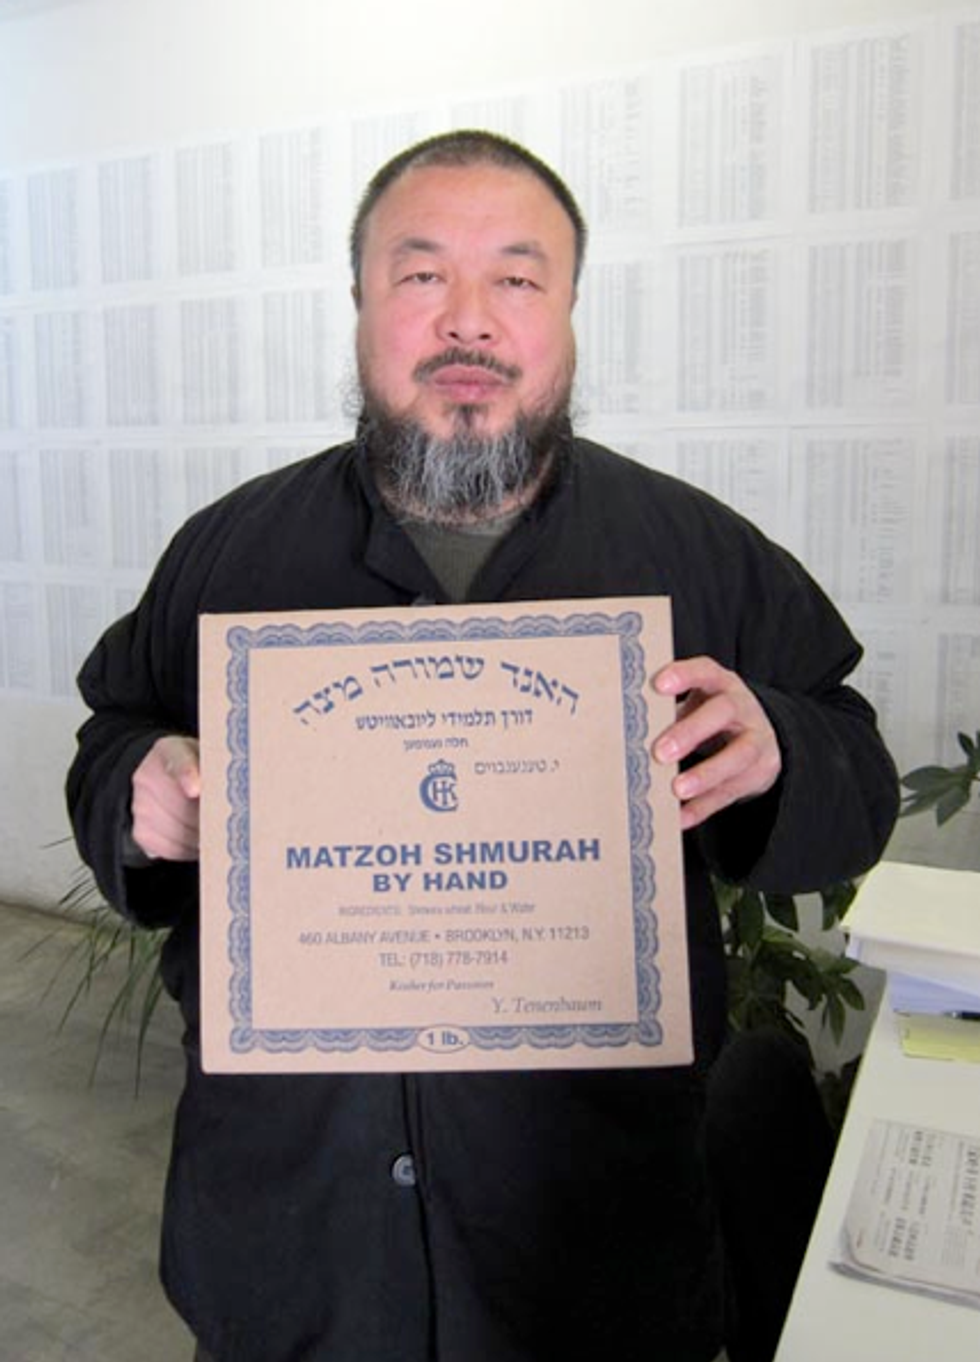 A Protest On Behalf of Ai Weiwei Grows In Brooklyn